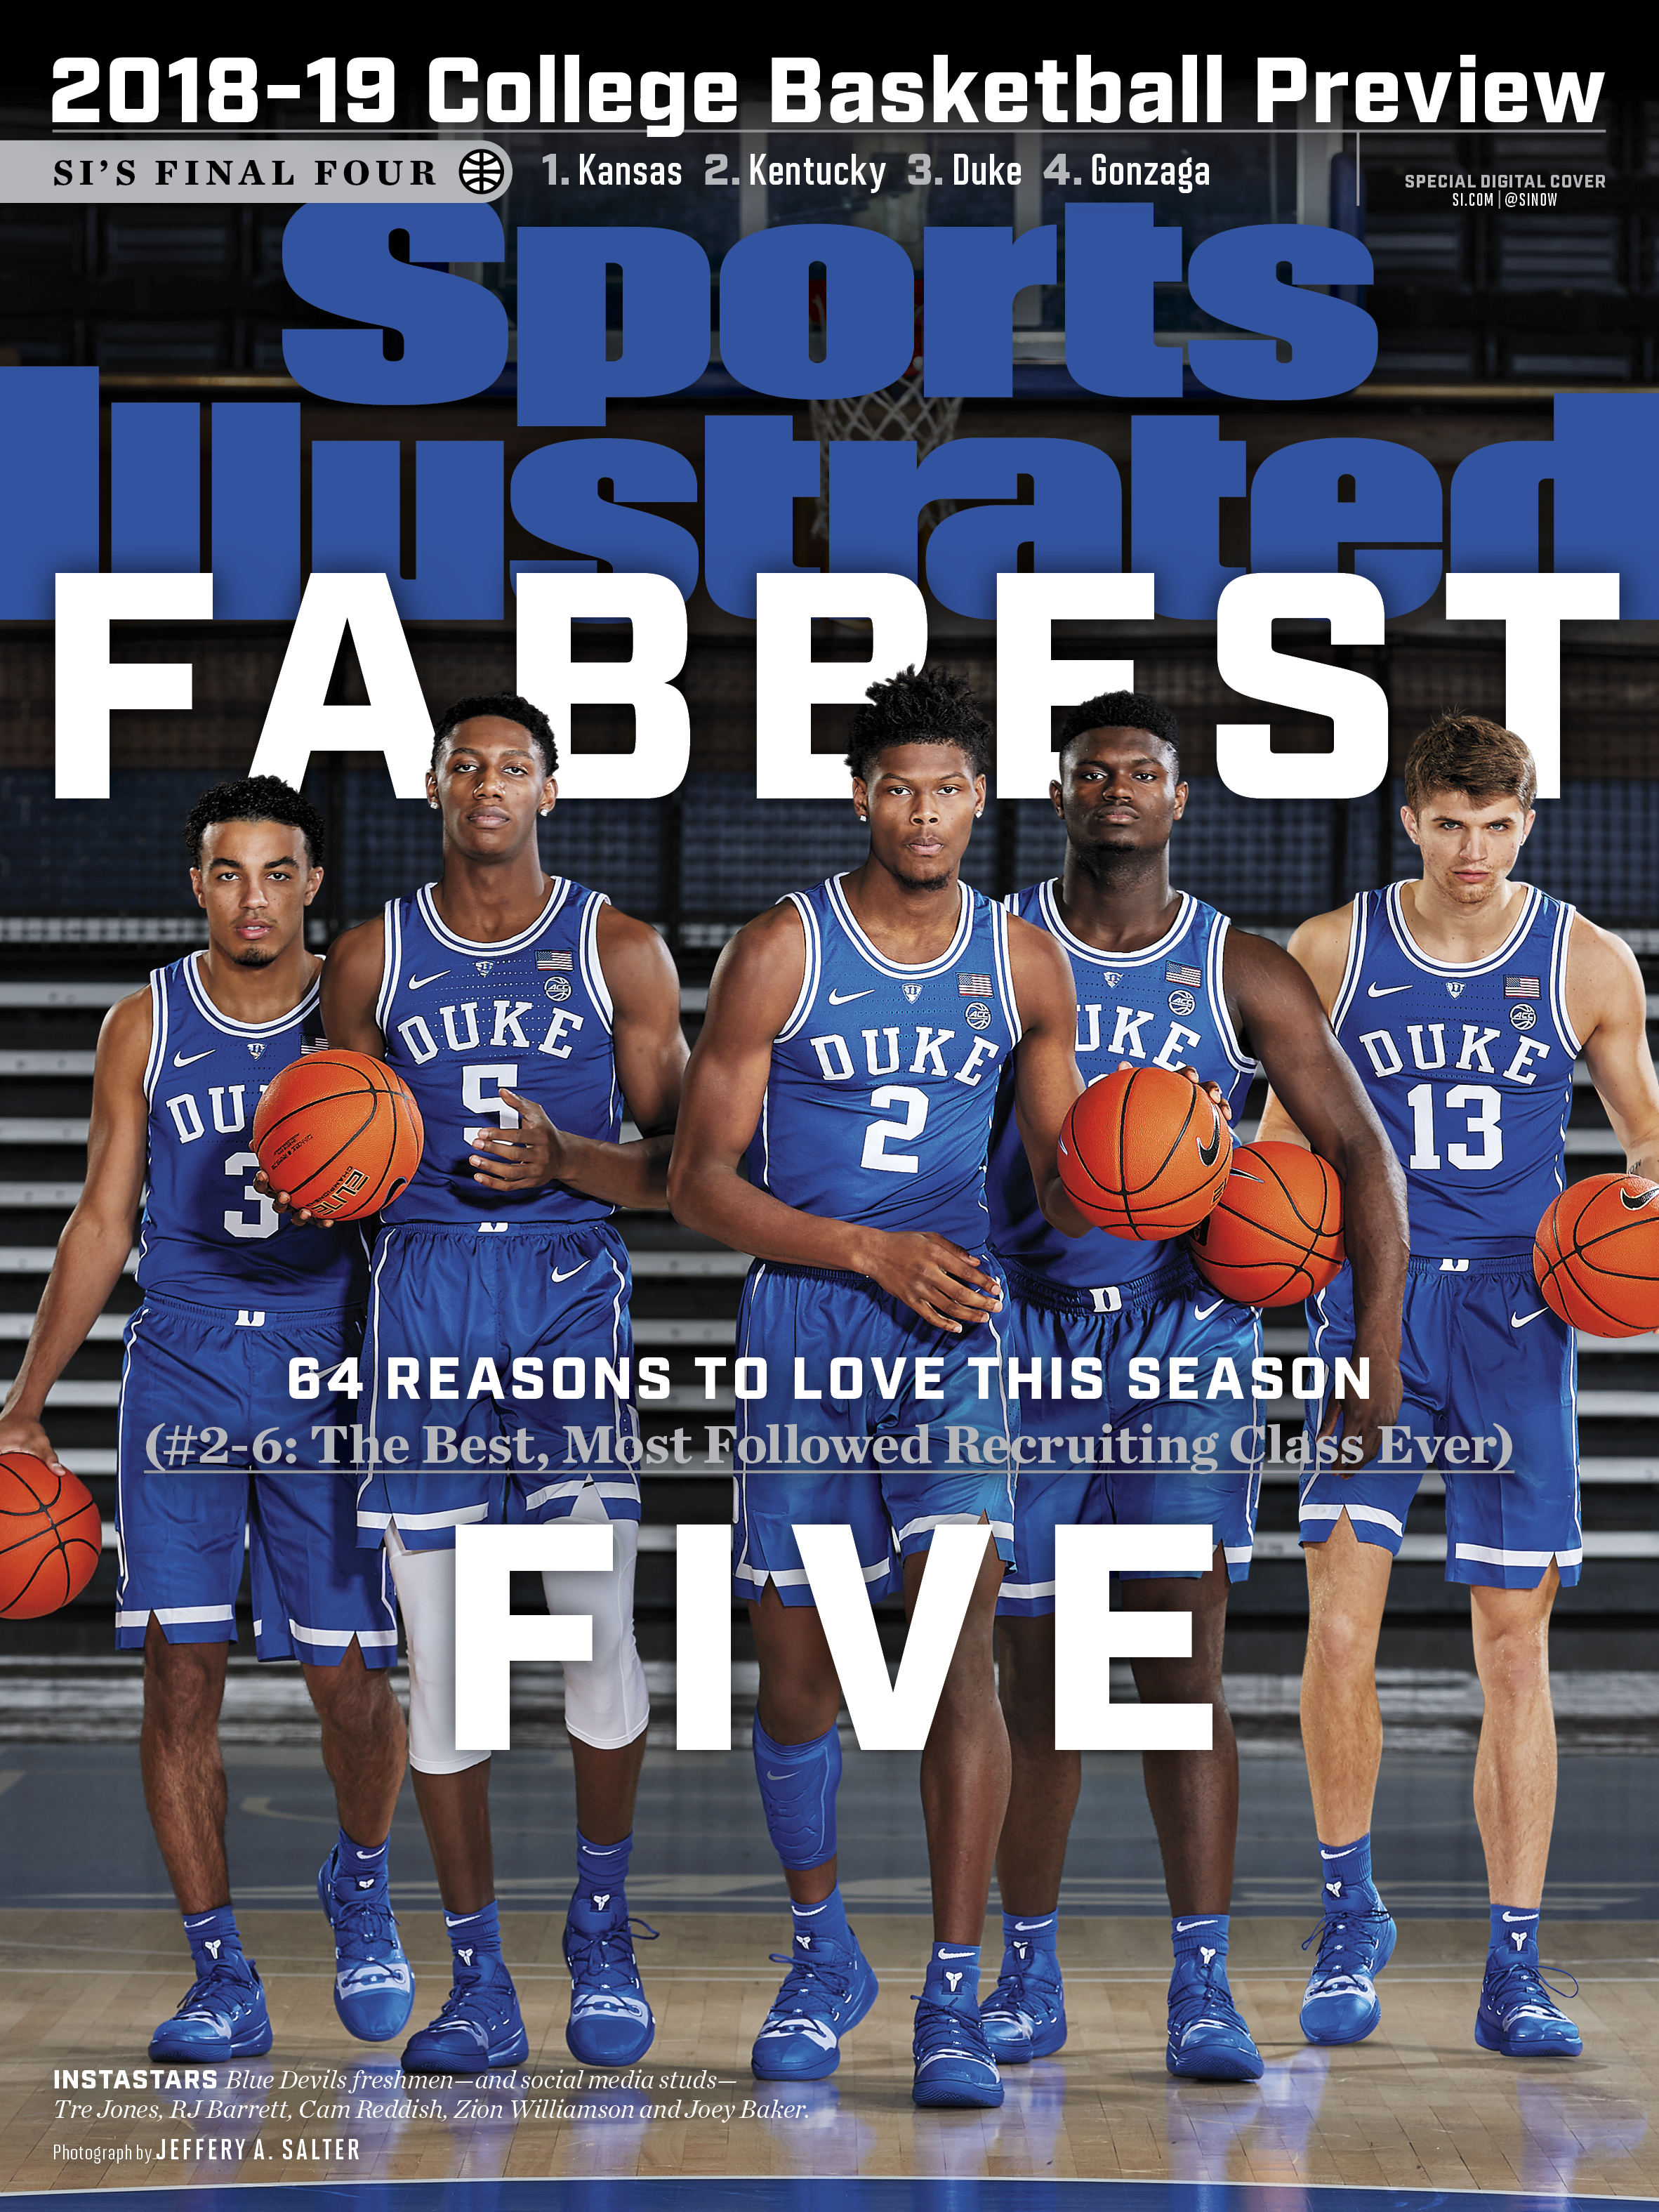 sports illustrated college preview cover 2018-19